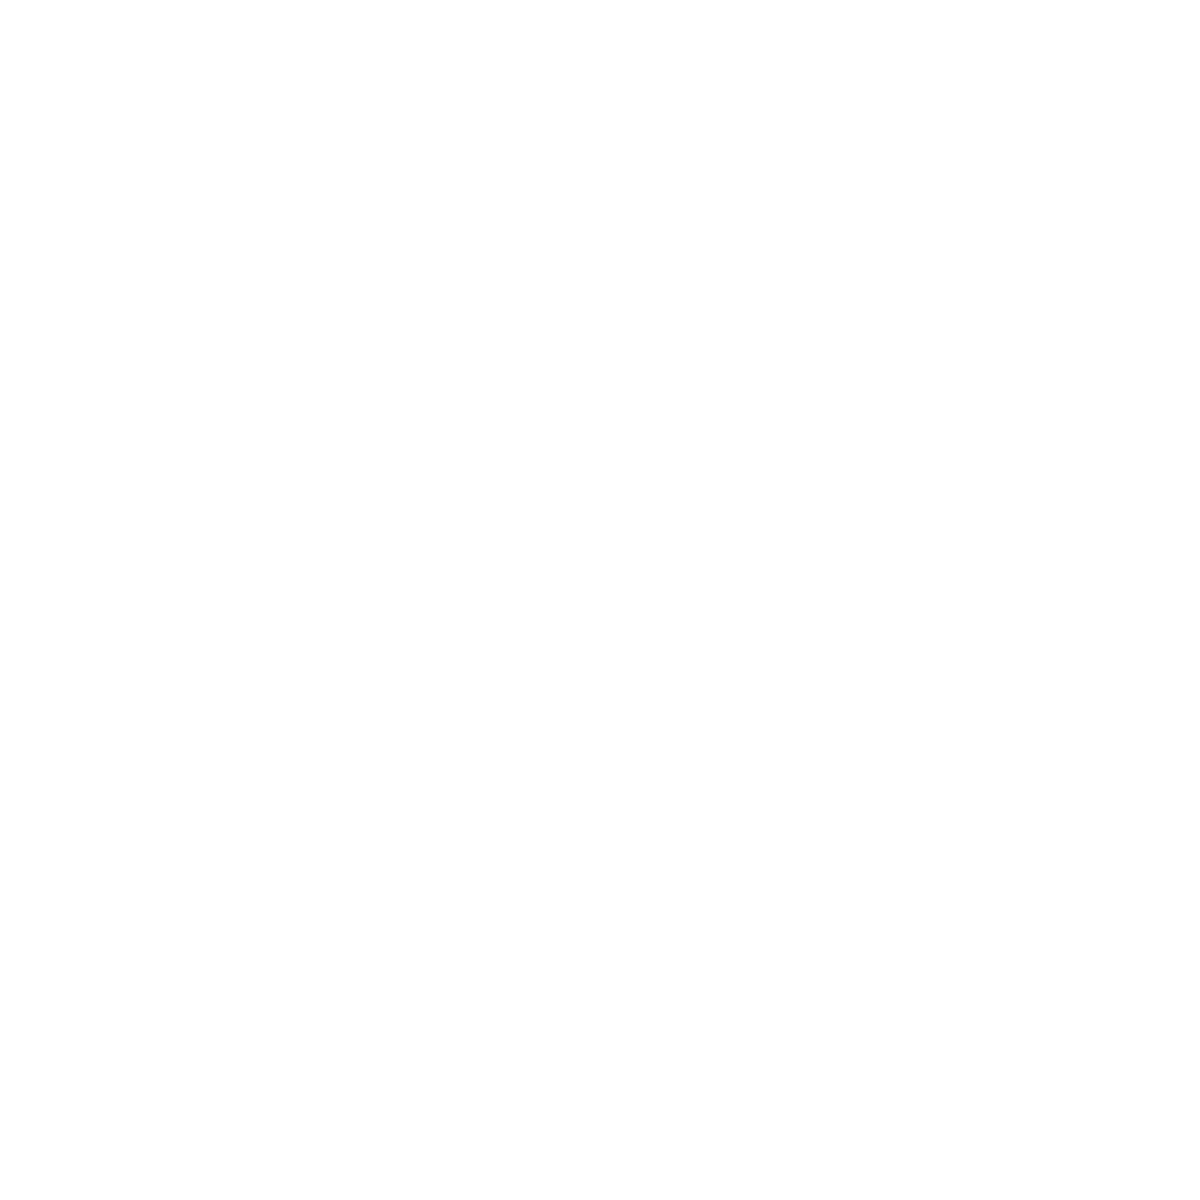 Envelope encircled by two arrows icon